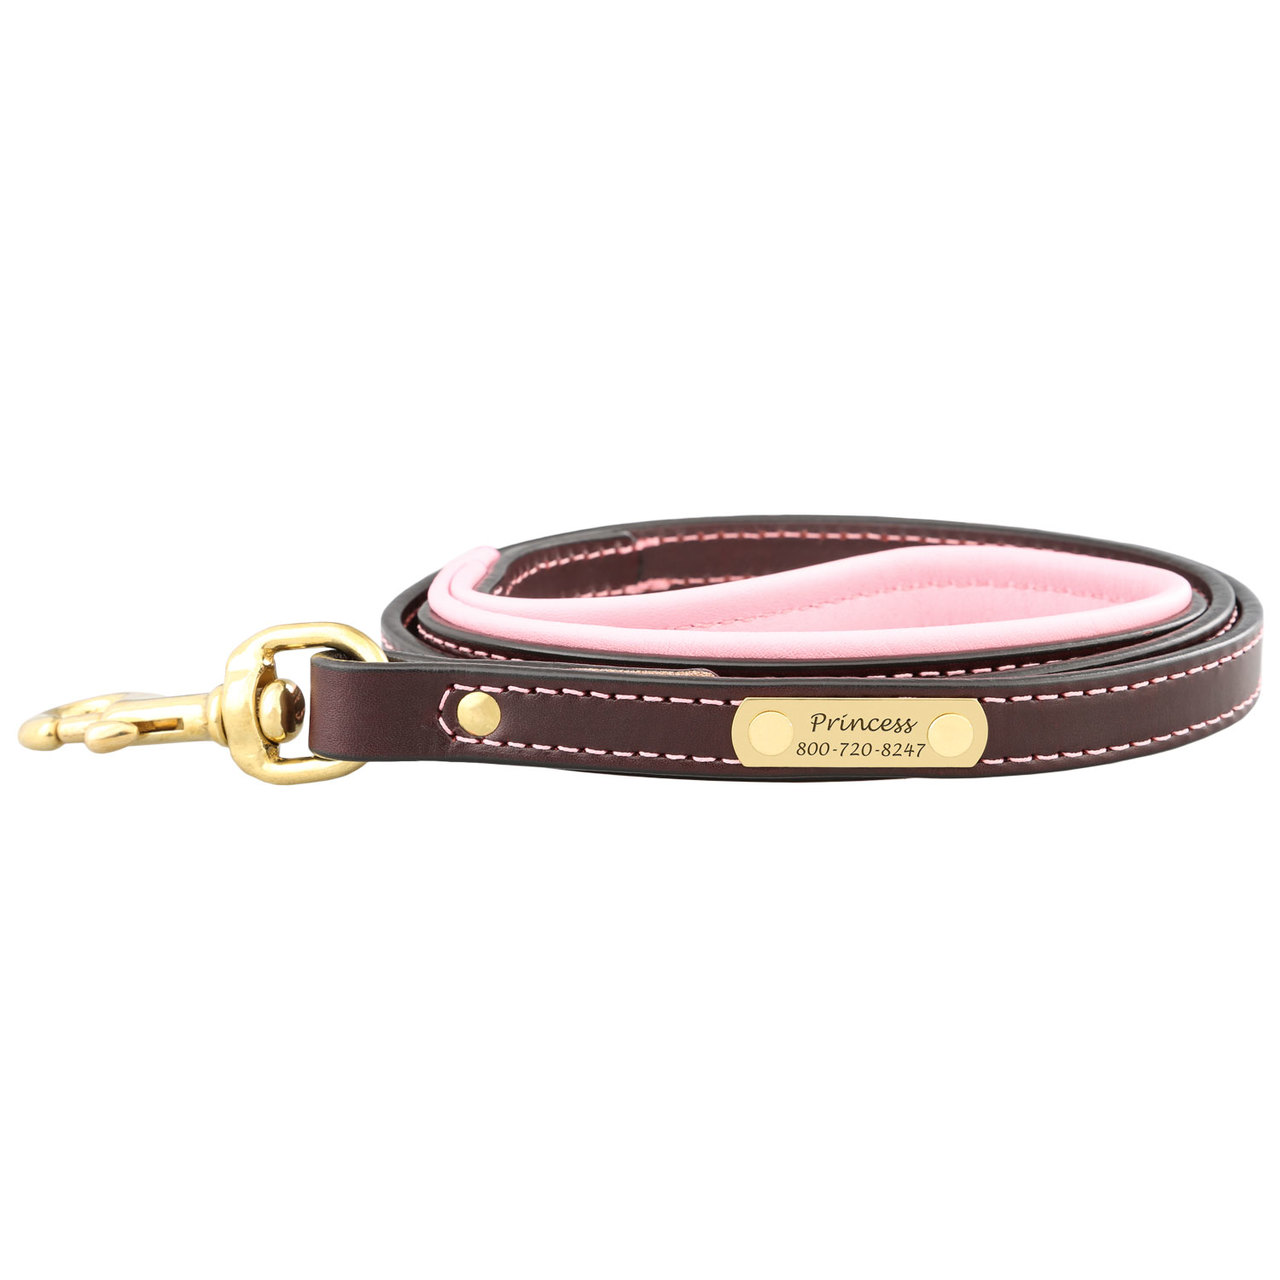 Padded Leather Leash with Nameplate - Brown with Pink